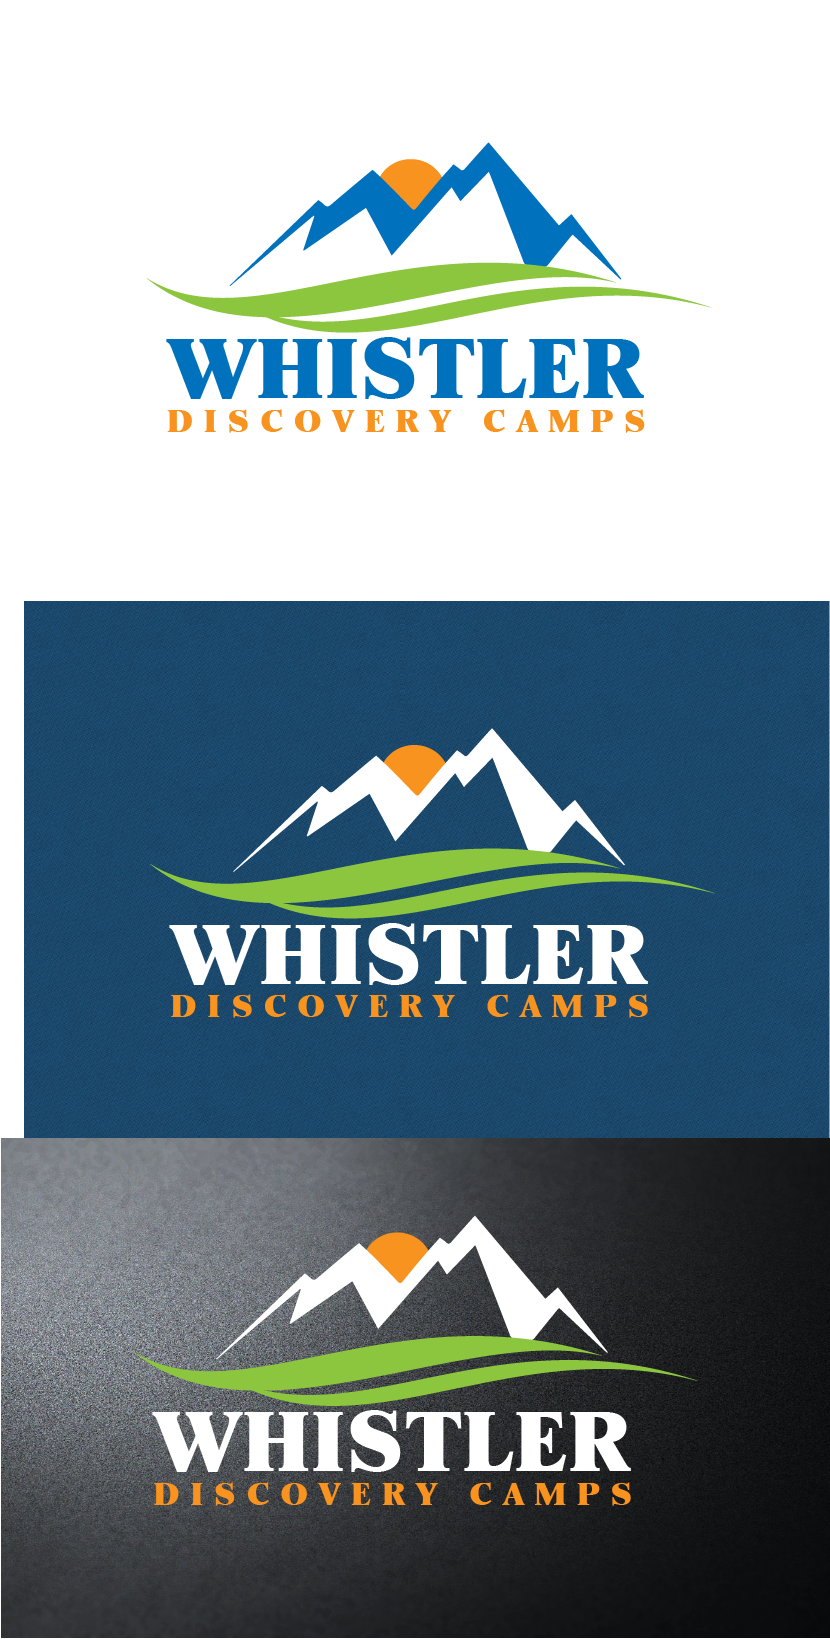 Logo Design by brands_in - Entry No. 136 in the Logo Design Contest Captivating Logo Design for Whistler Discovery Camps.